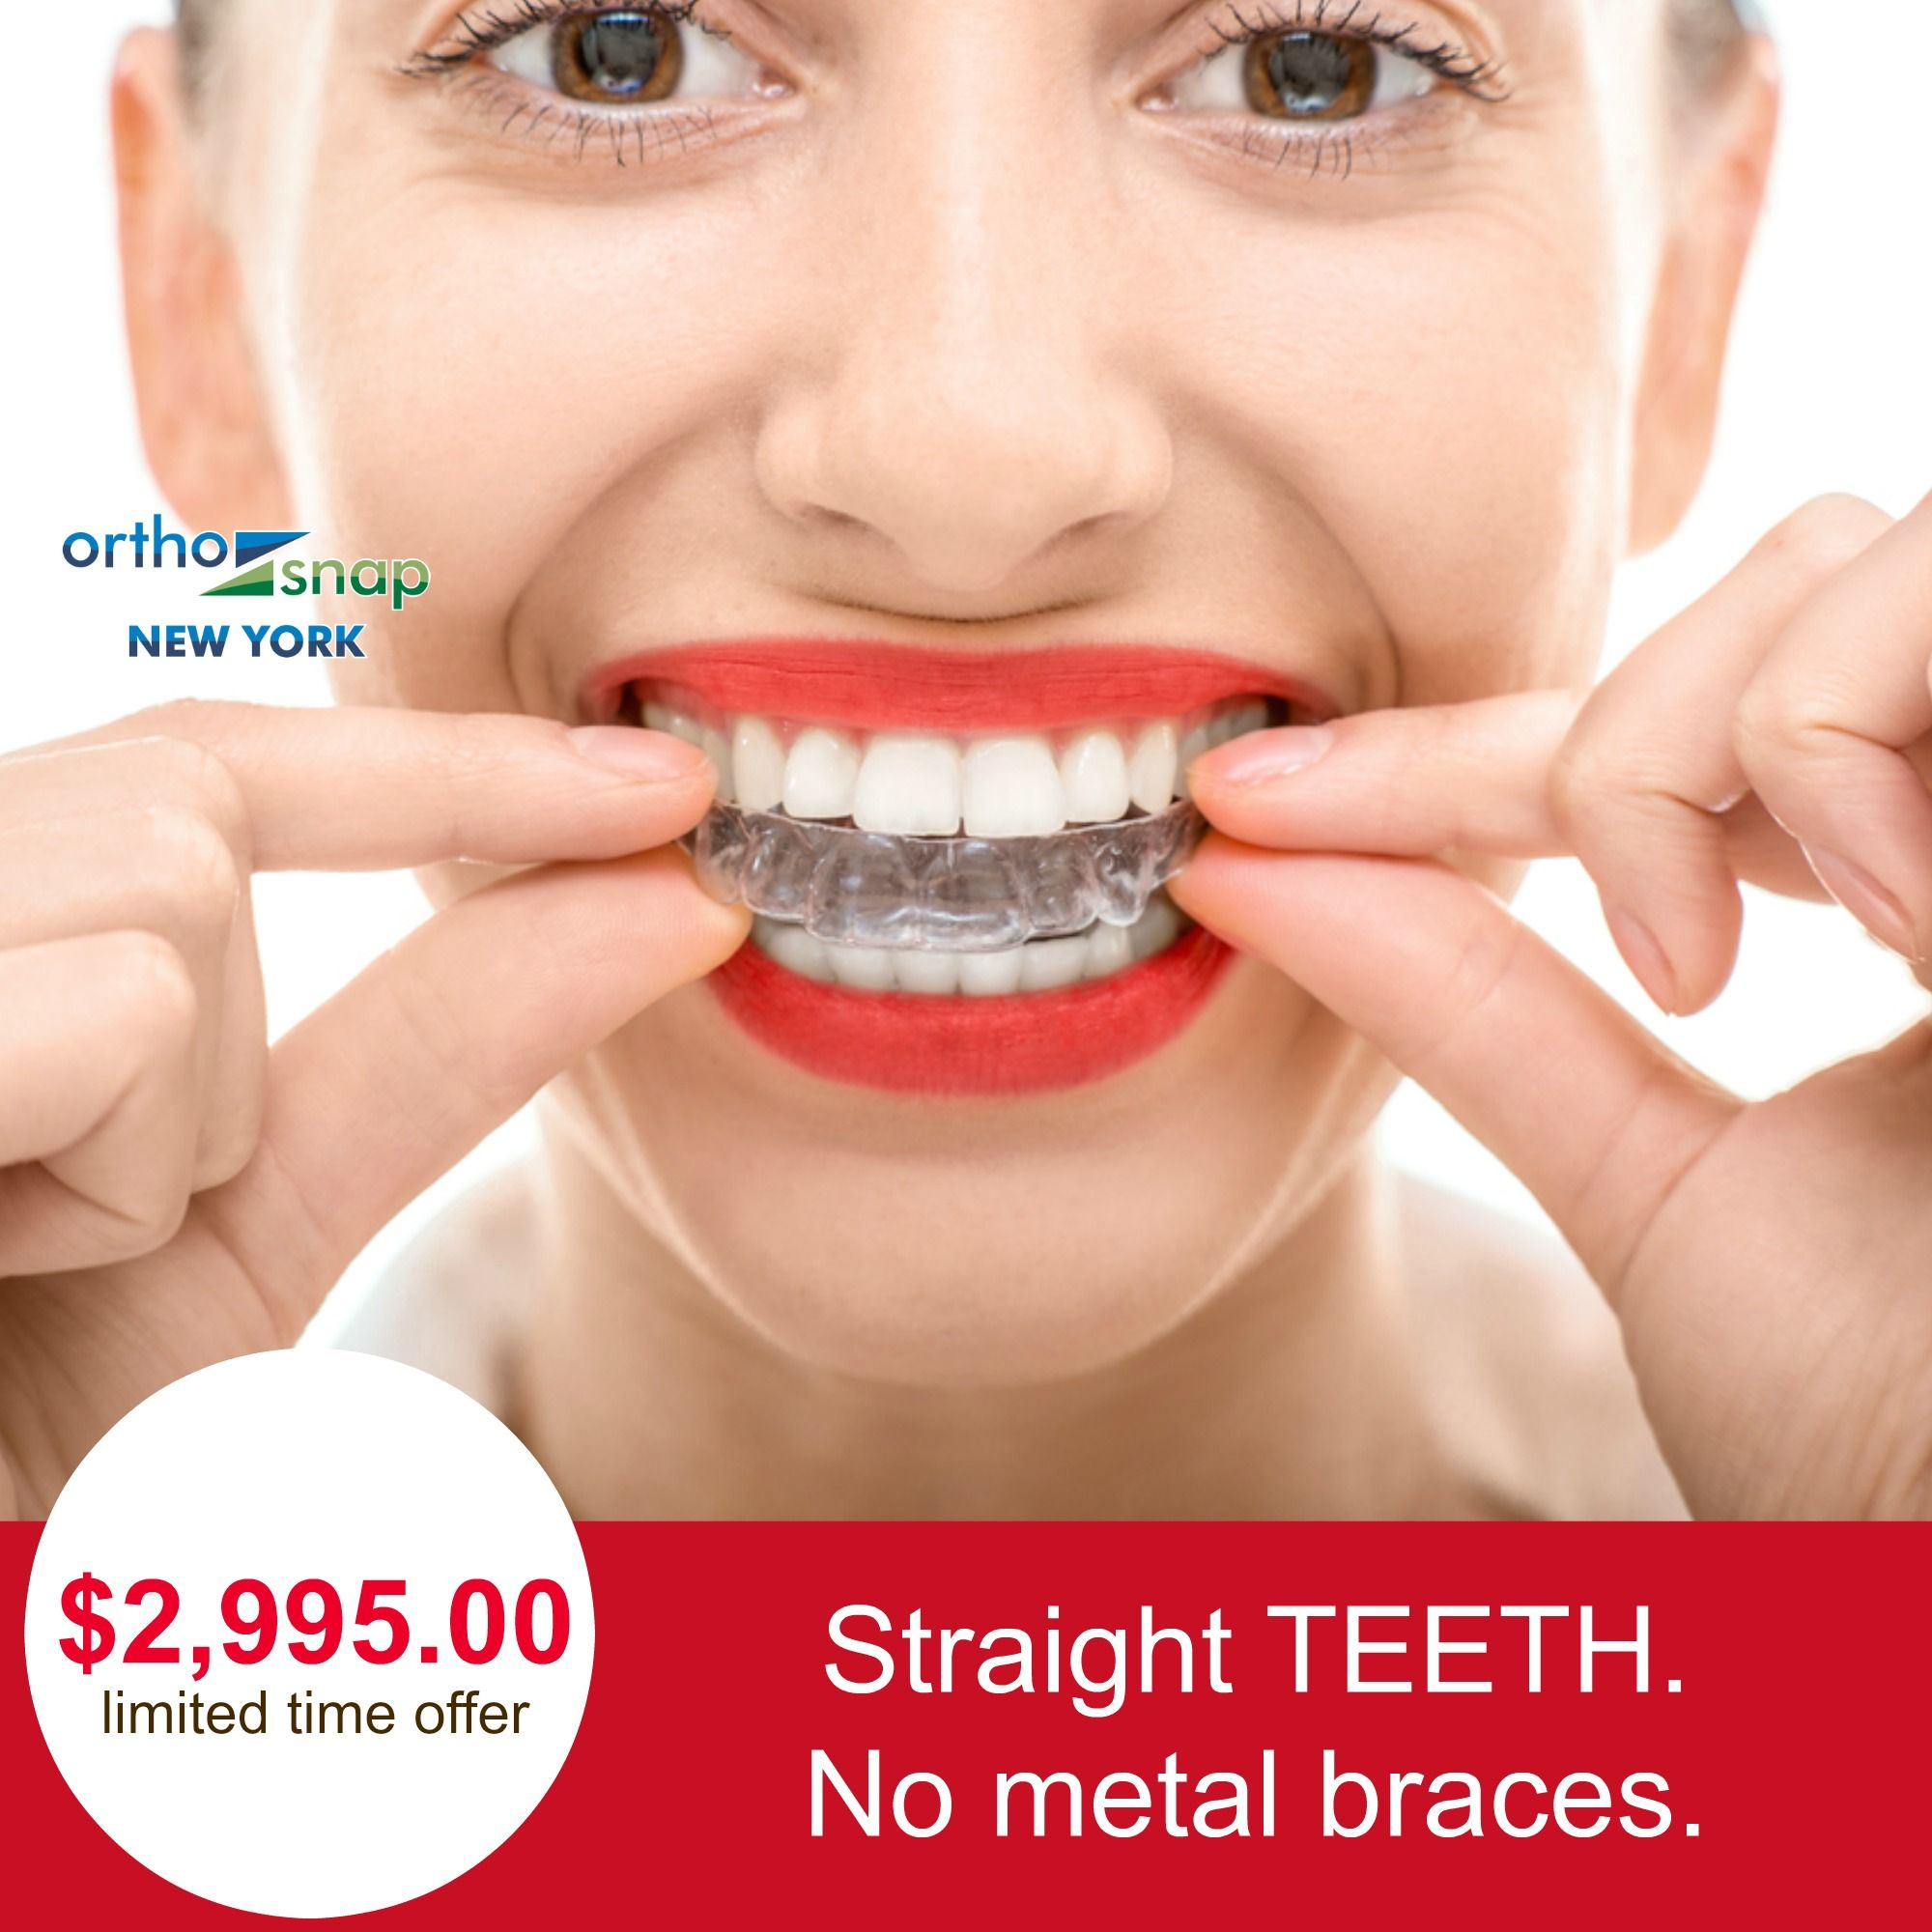 how to straighten teeth without braces at home in tamil